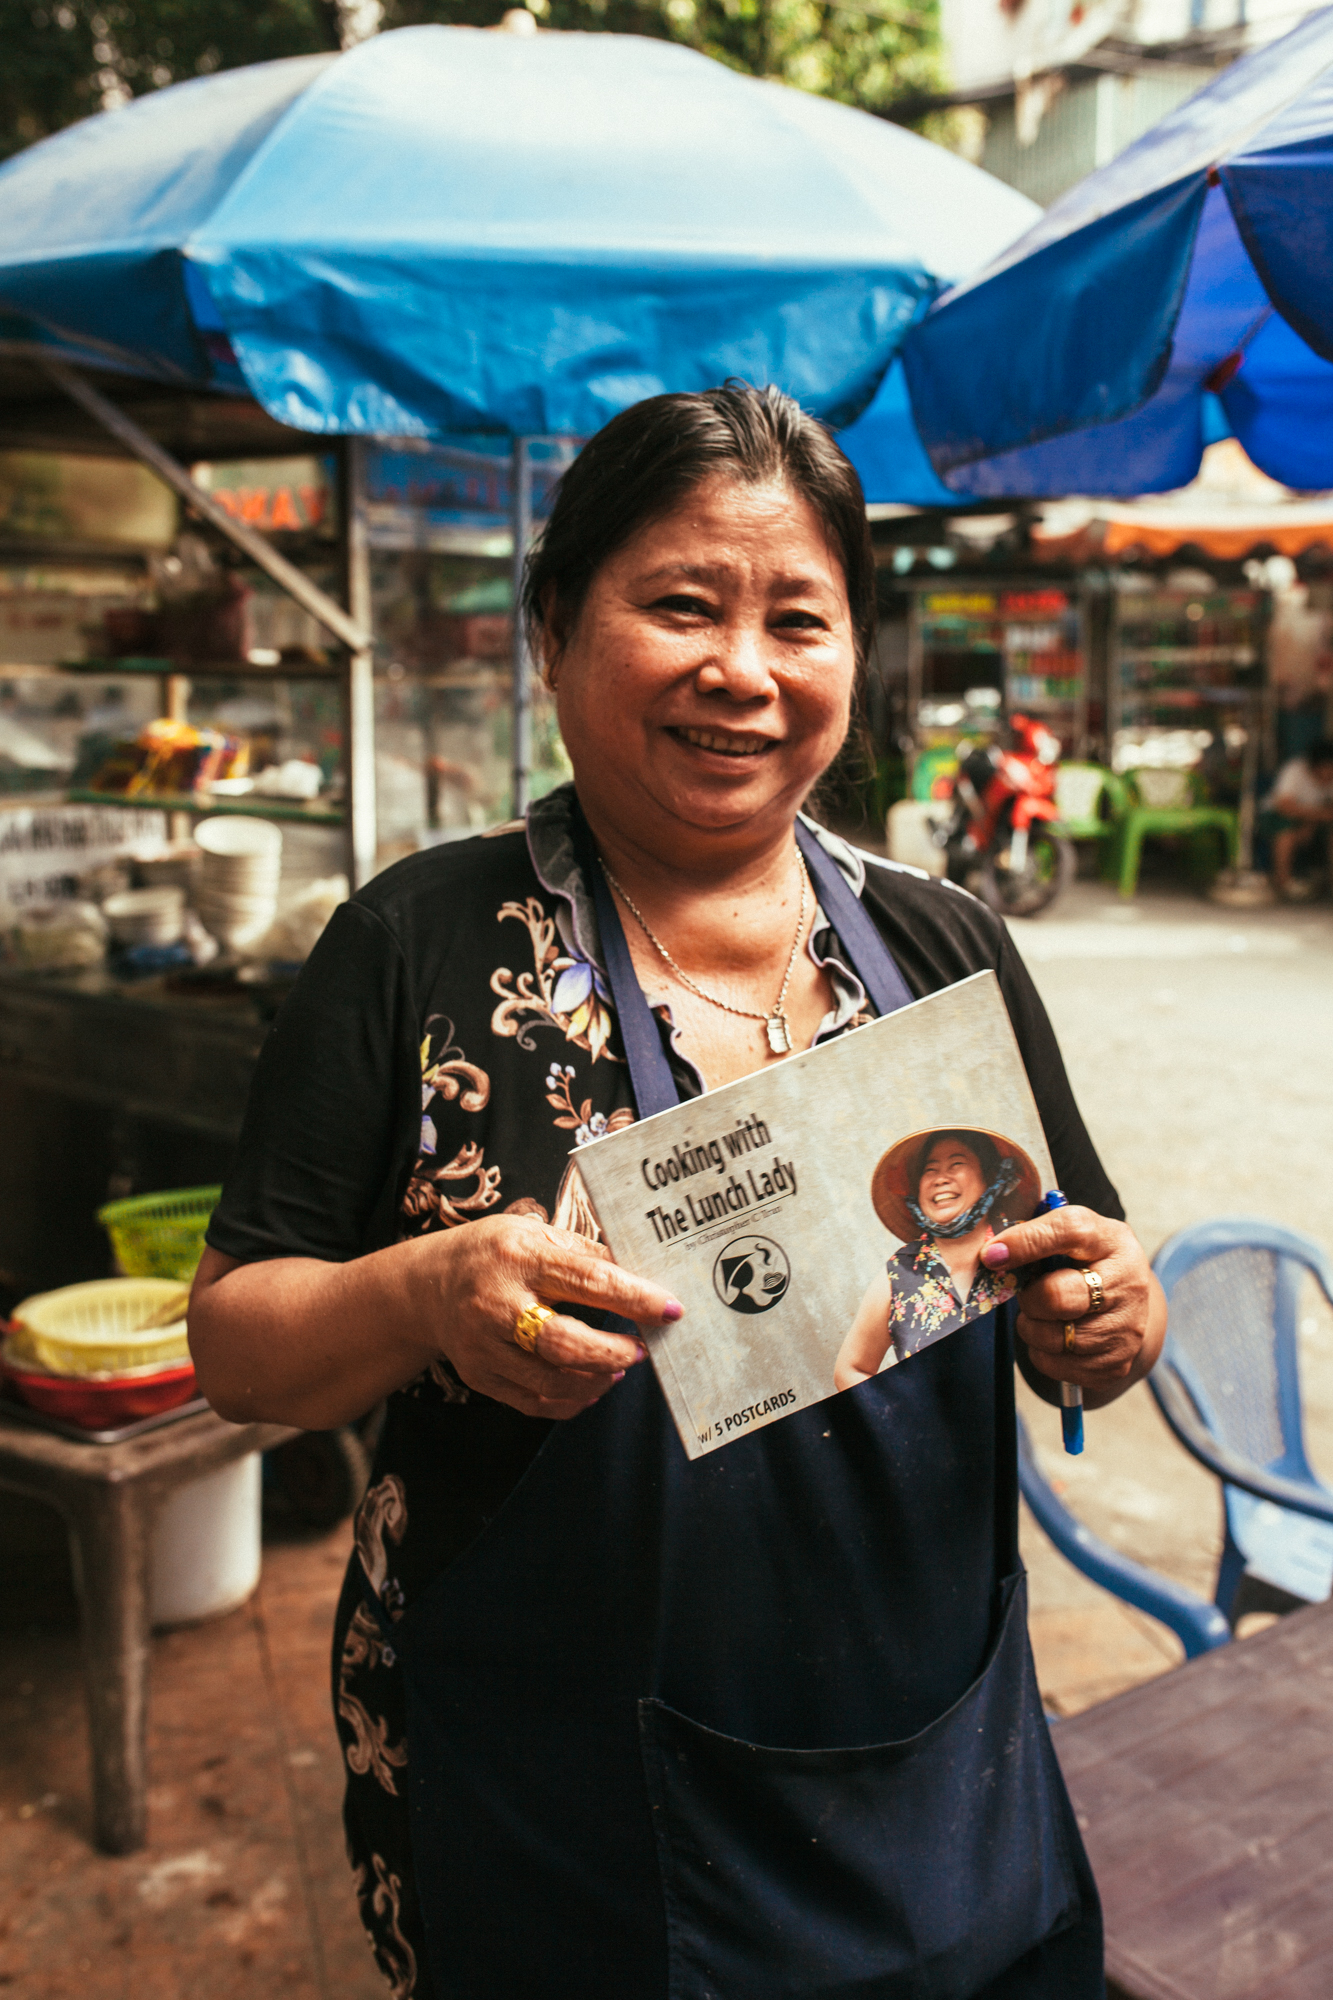 The Lunch Lady herself, Ms. Nguyen Thi Thanh.